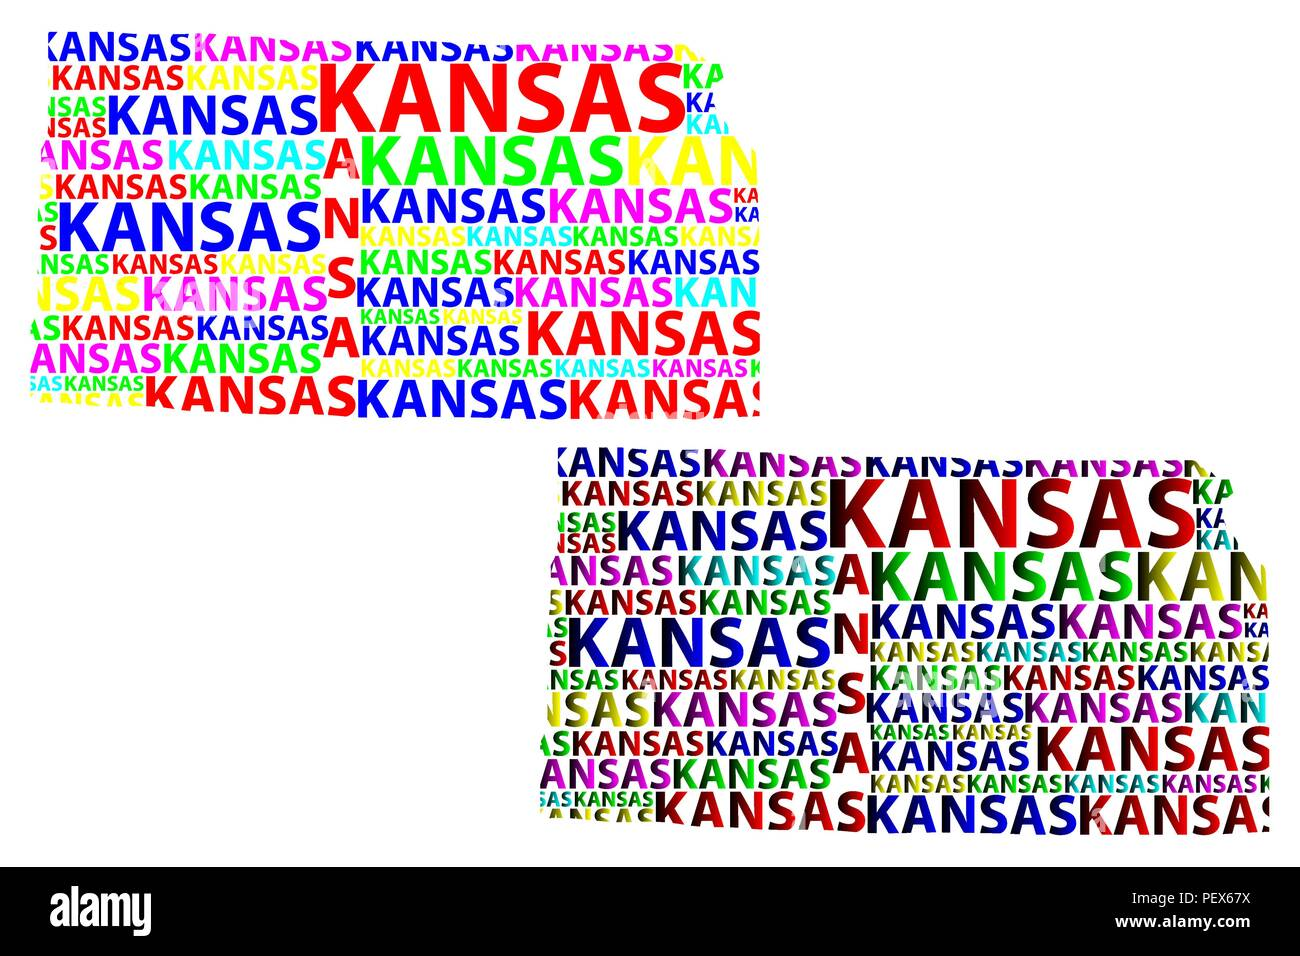 Sketch Kansas (United States of America) letter text map, Kansas map ...